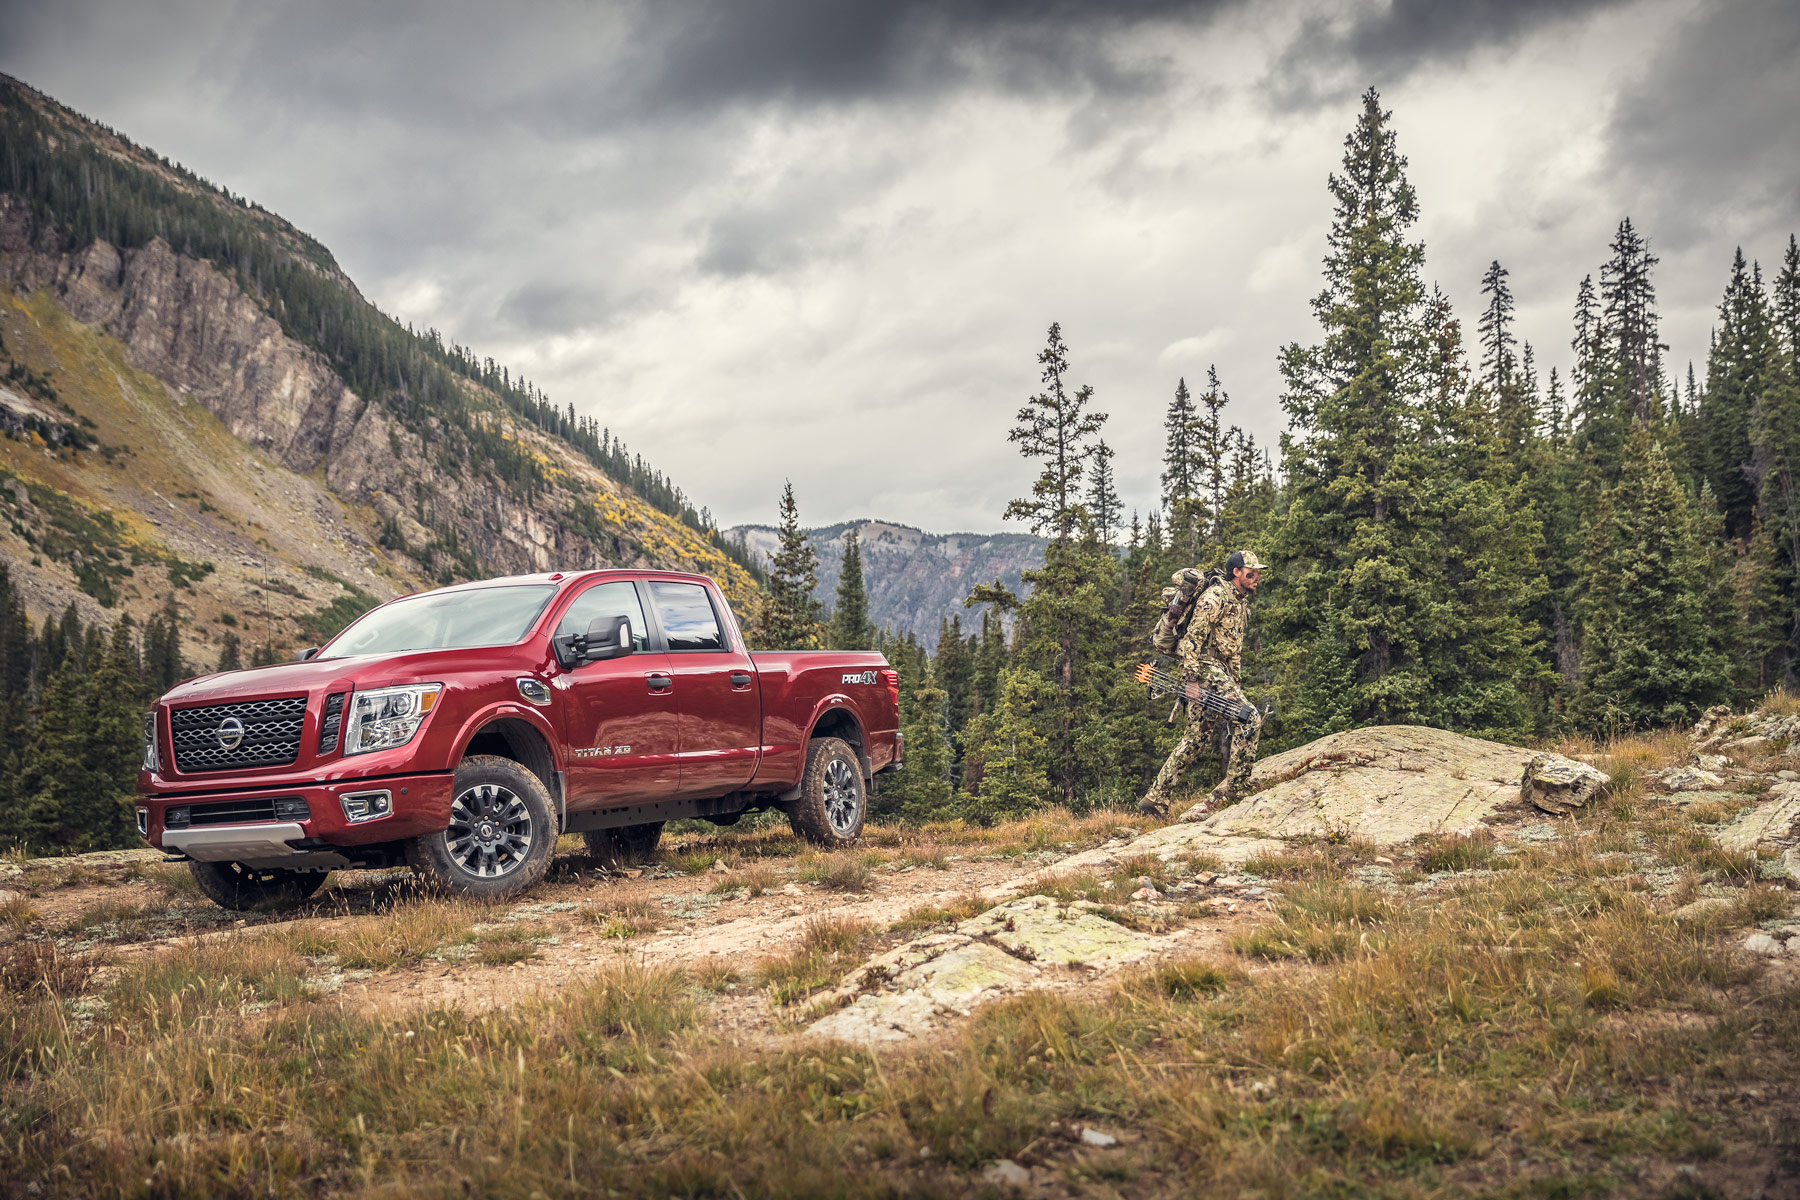 Automotive Photography - 2018 Nissan Titan XD and elk hunter